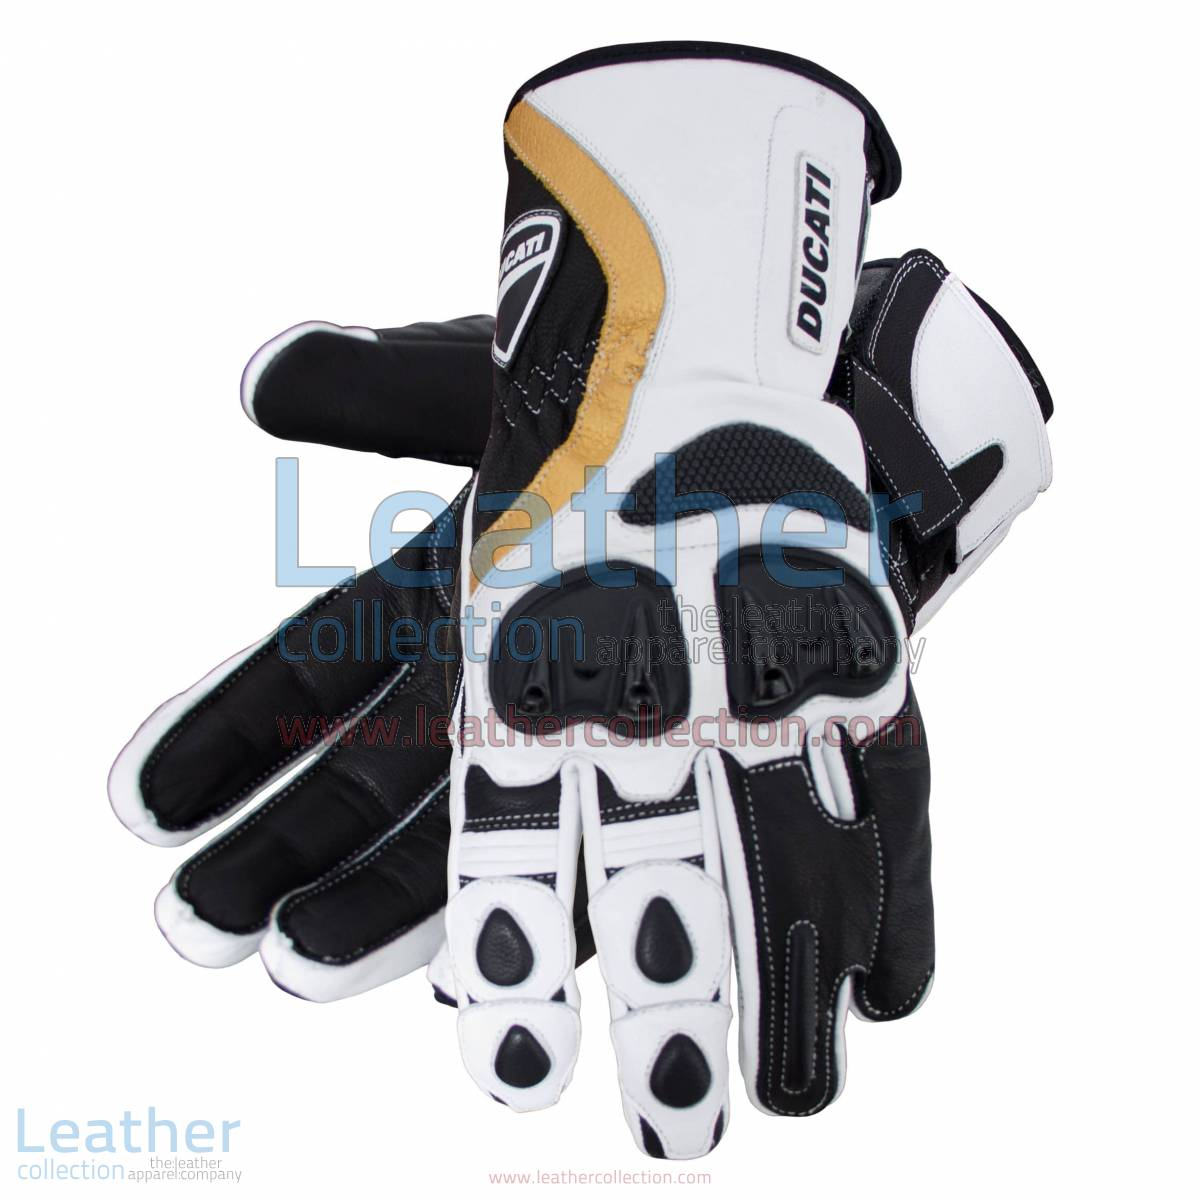 Ducati Motorcycle Leather Gloves | Ducati motorcycle gloves